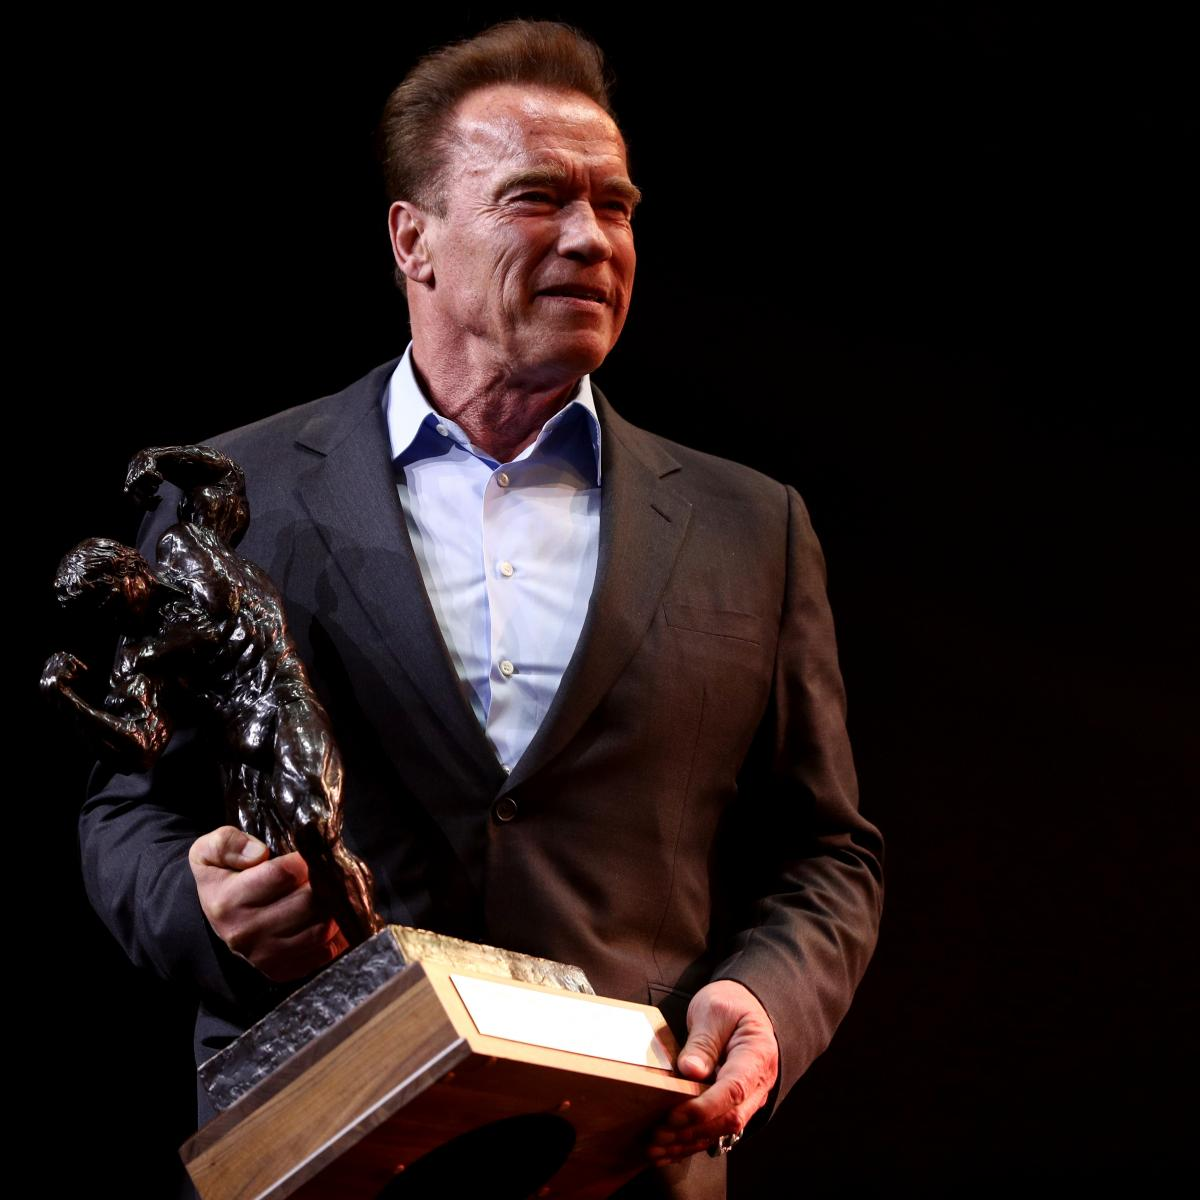 Flipboard Sports Highlights News Now: Arnold Sports Festival Results 2017: Sunday Results